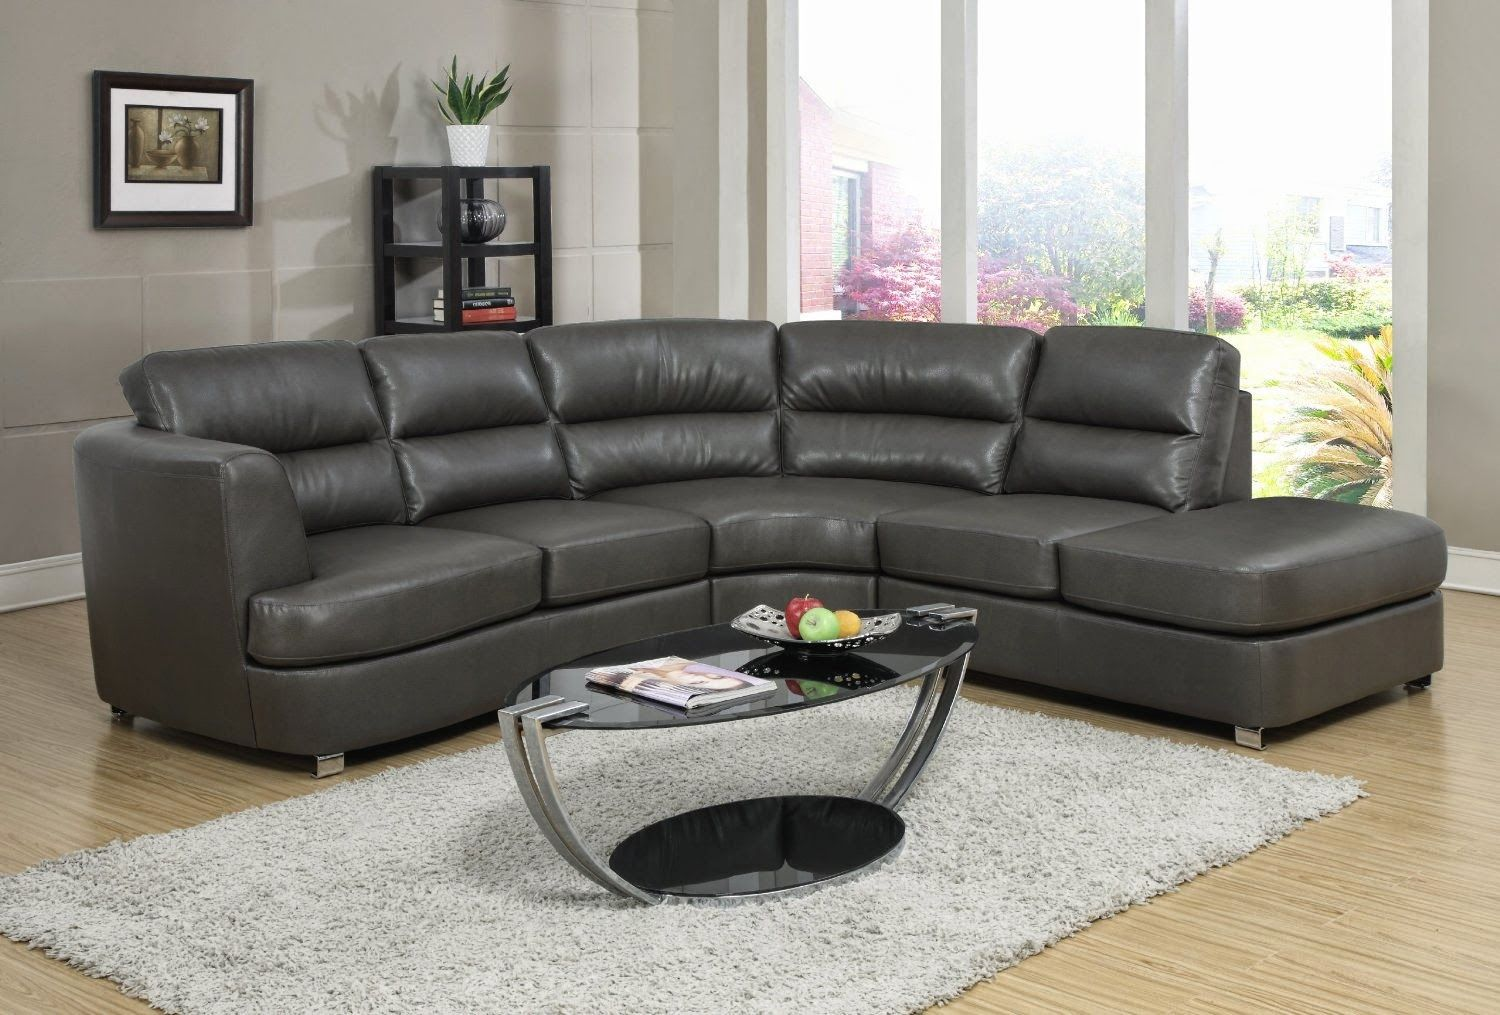 grey sectional couch grey leather